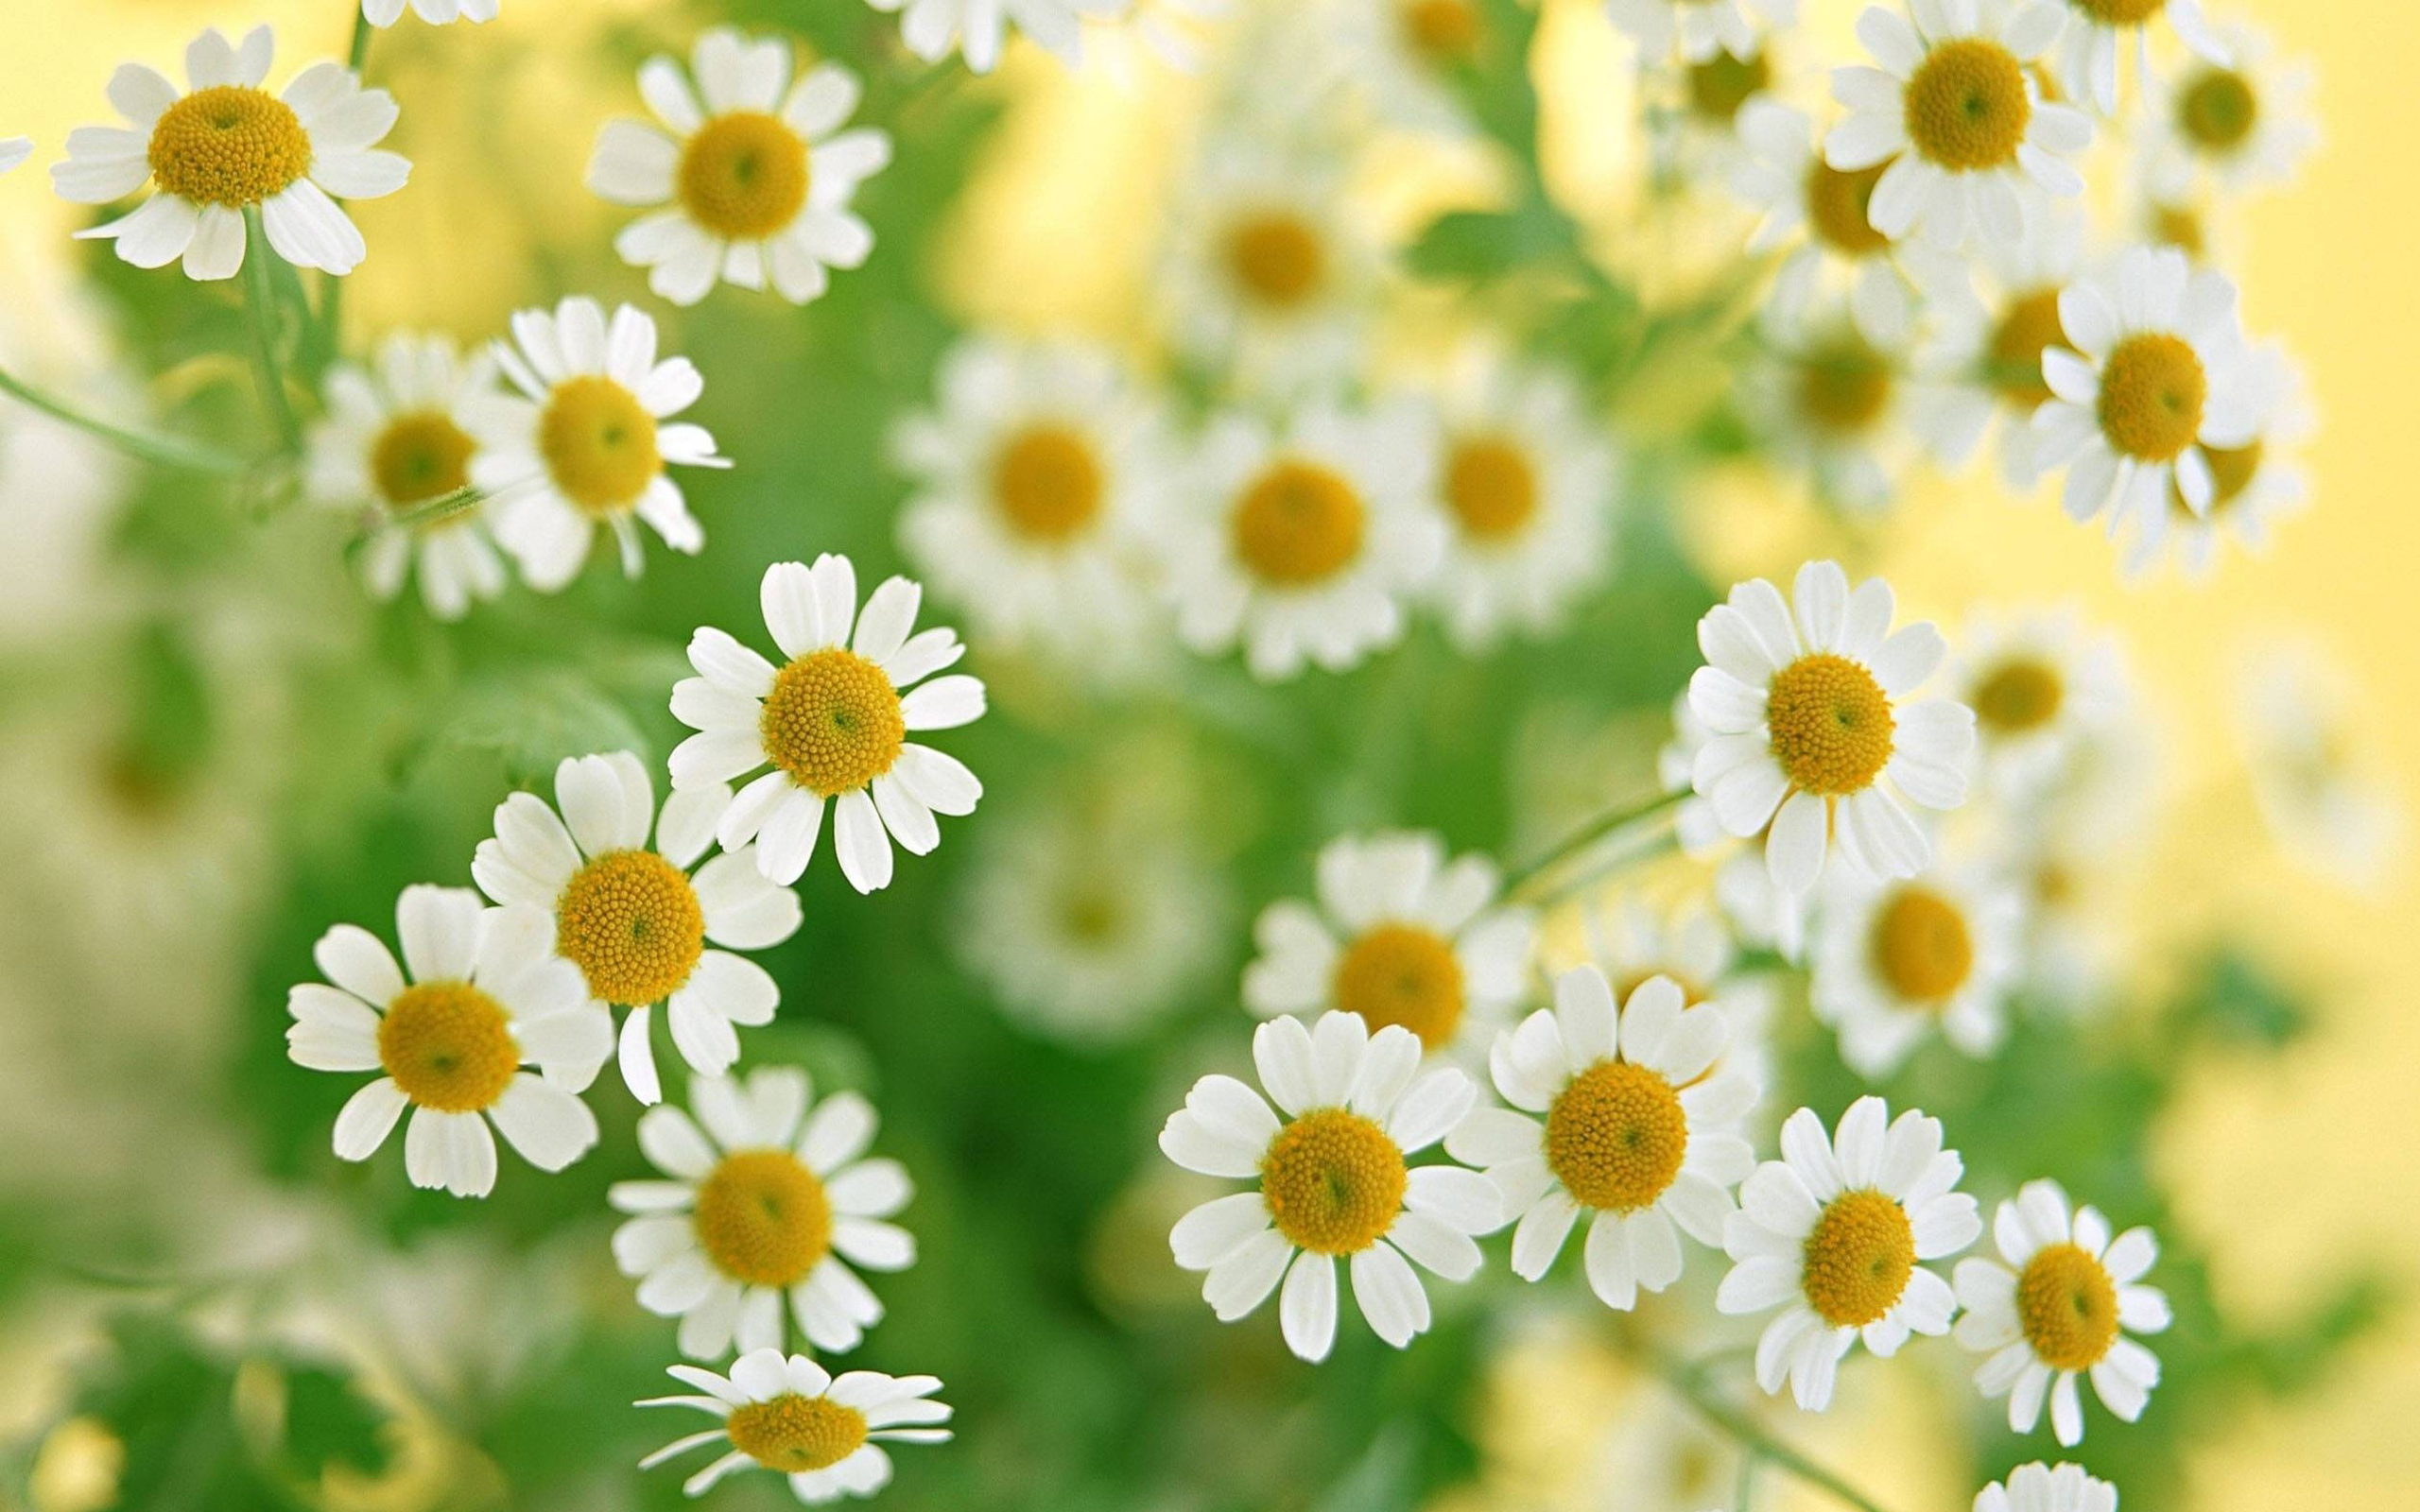 White flower hd wallpapers wallpapers white flower photos white flower pictures mightylinksfo